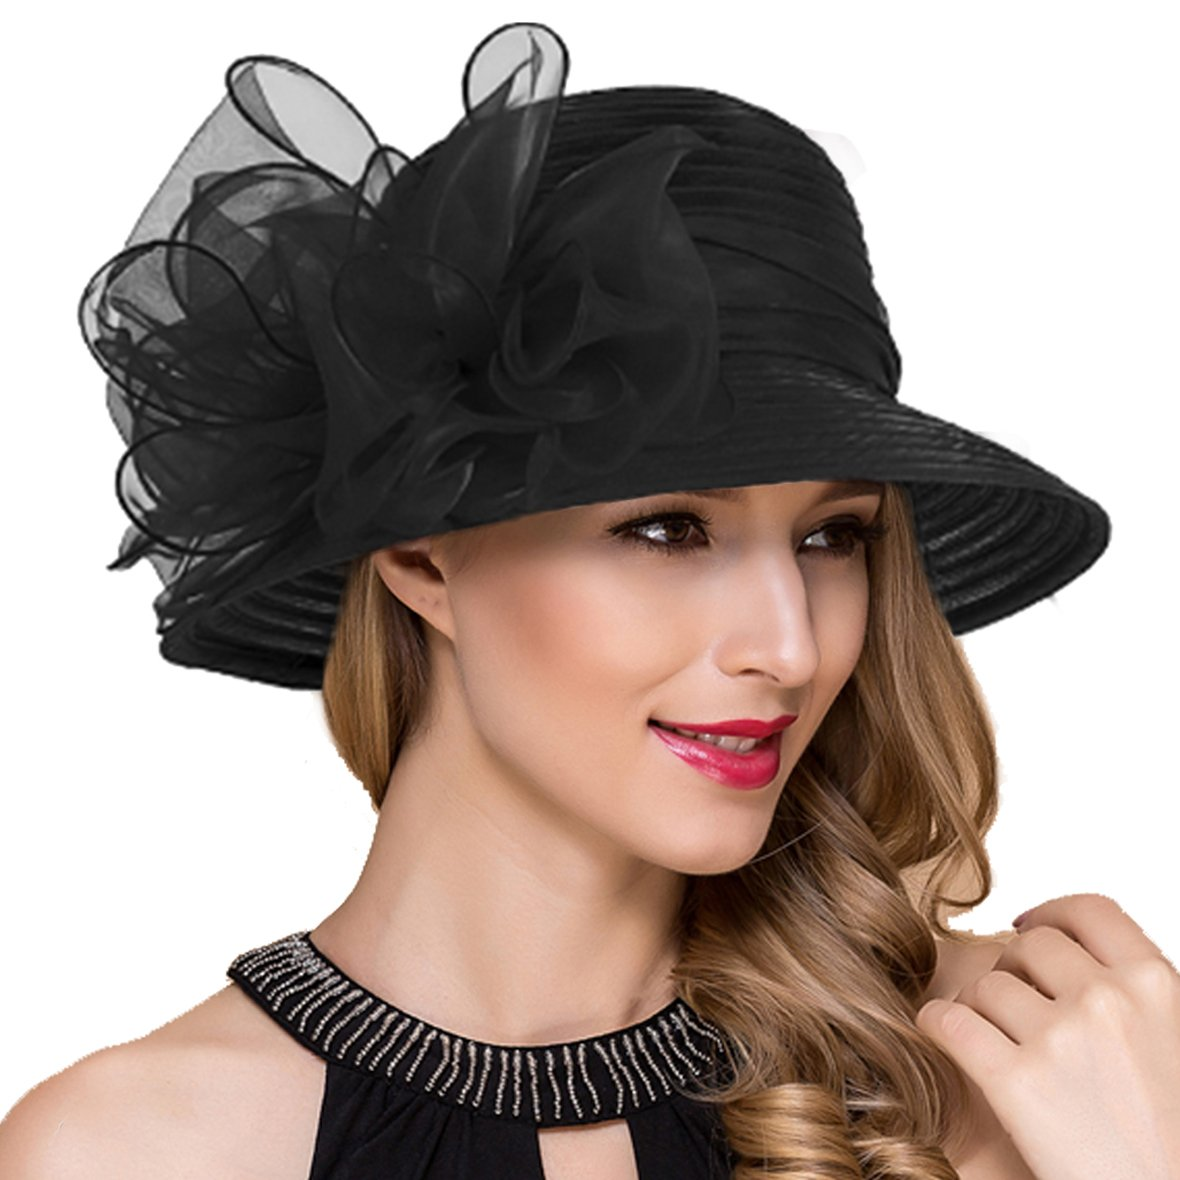 Lady Church Derby Dress Cloche Hat Fascinator Floral Tea Party Wedding Bucket Hat S051 (Black) by Ruphedy